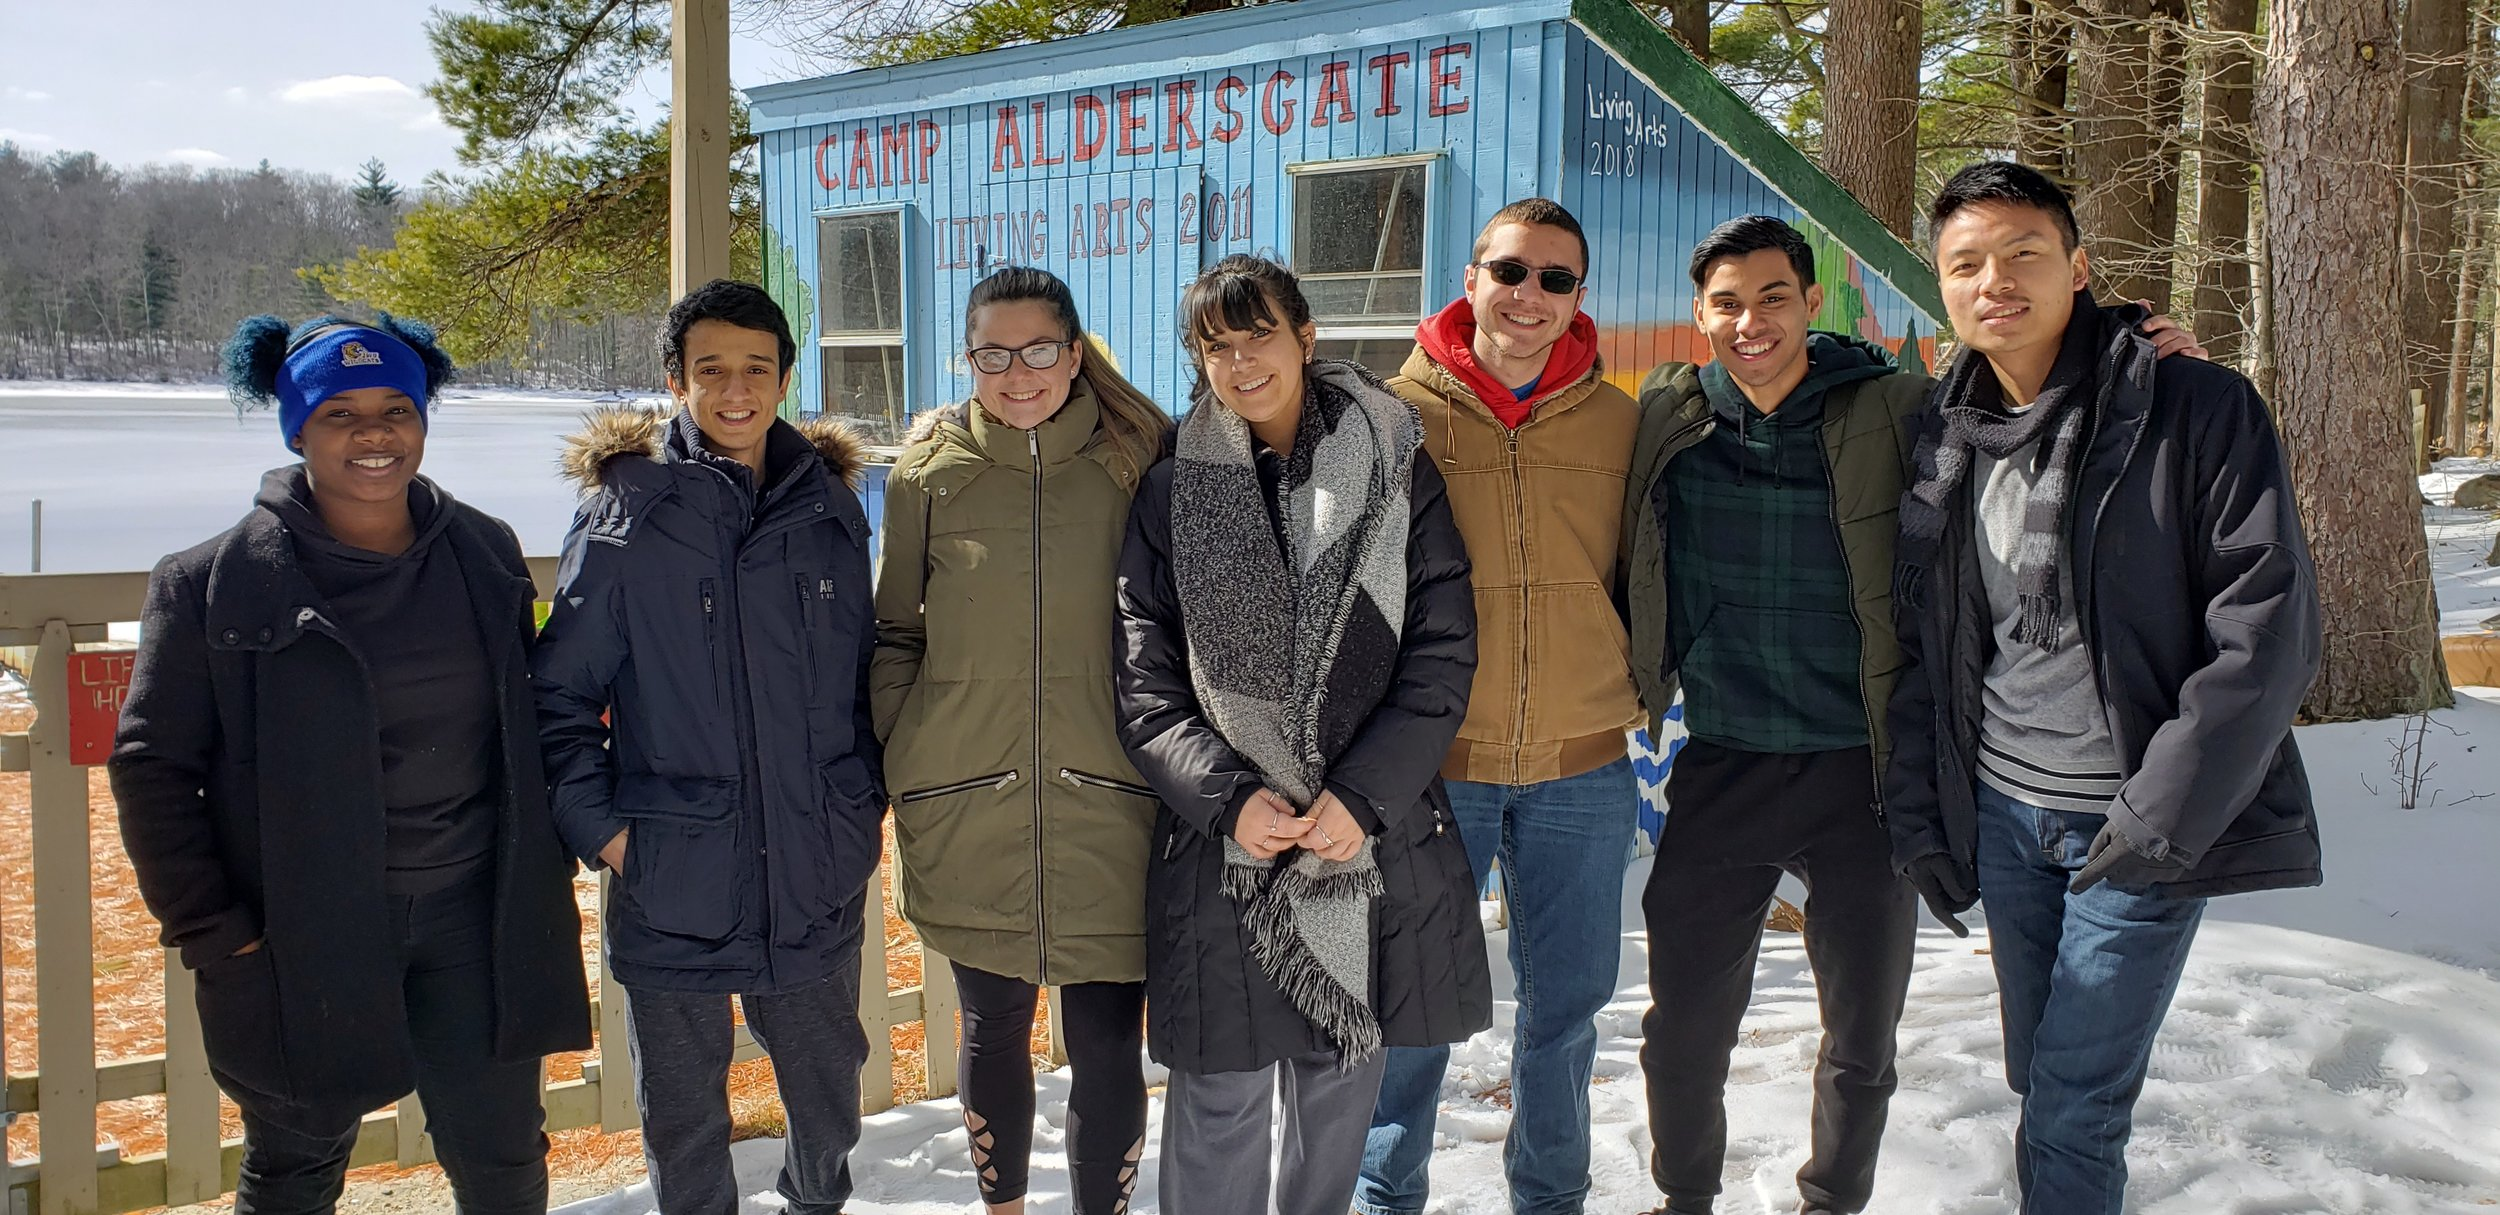 Pictured, left-right: Tynita Clouden, Loay Alshehri, Hannah Farr, Samantha Sobbell, Colin DeVico, Mohammad Ali, and TsheWang Sherpa.